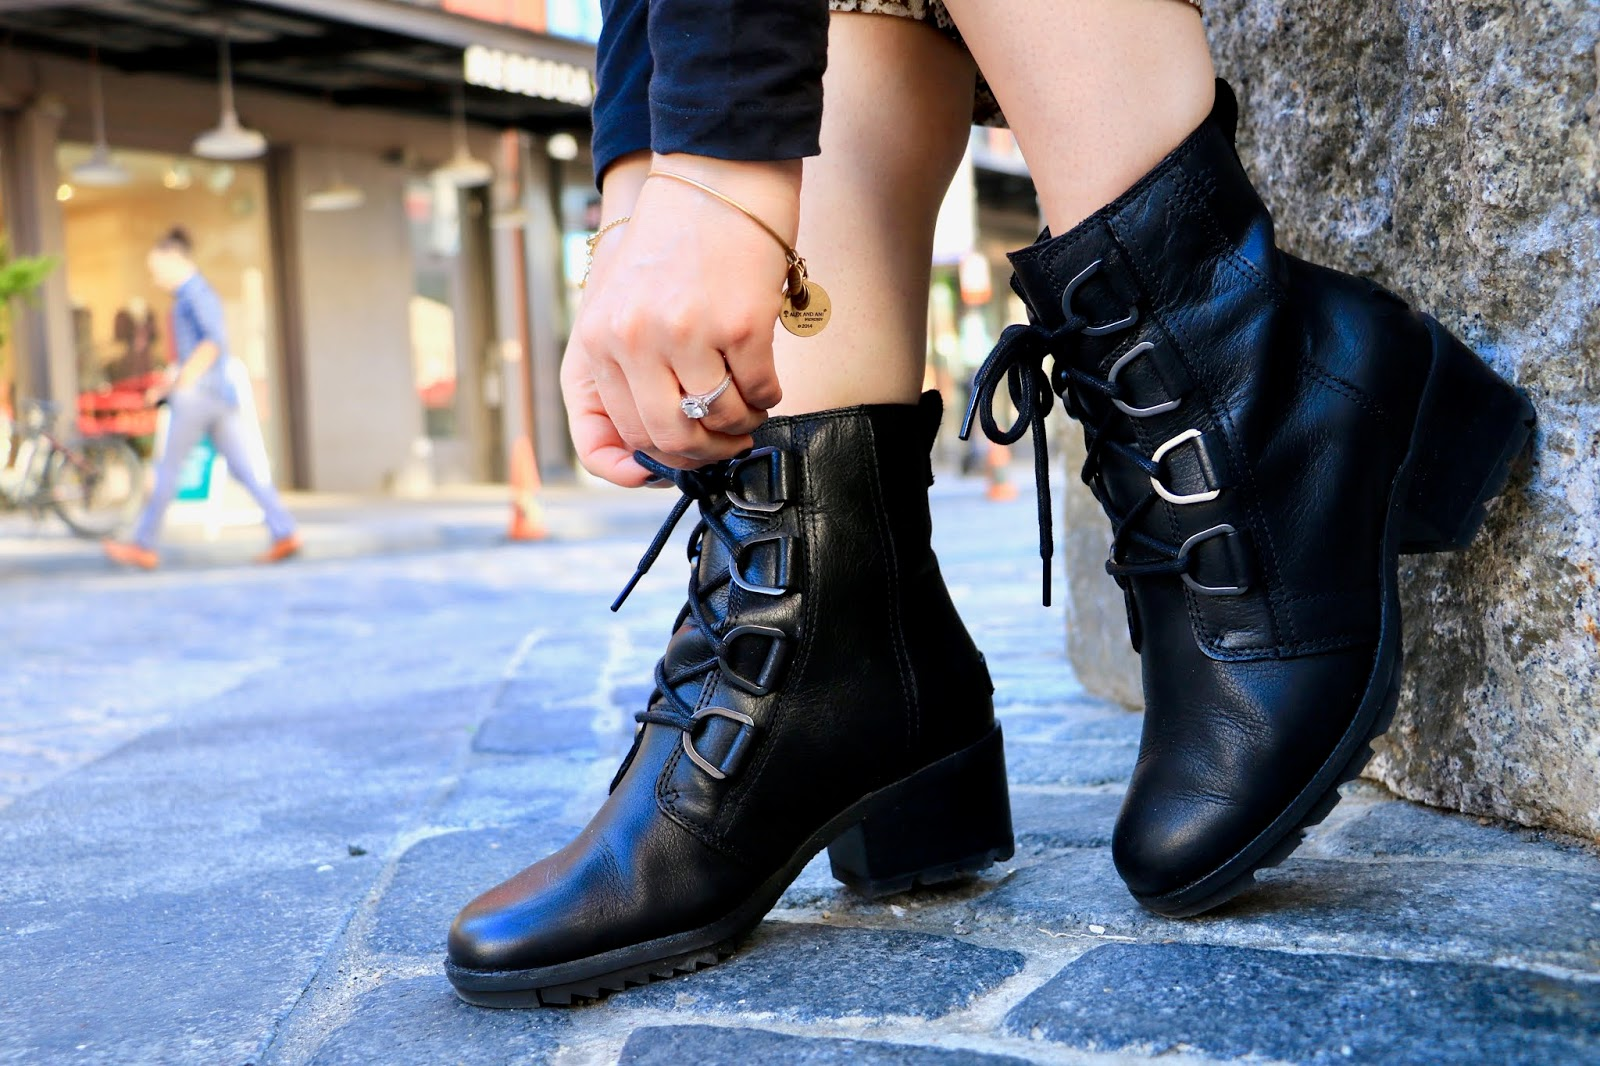 Nyc fashion blogger Kathleen Harper wearing sorel black lace-up boots.